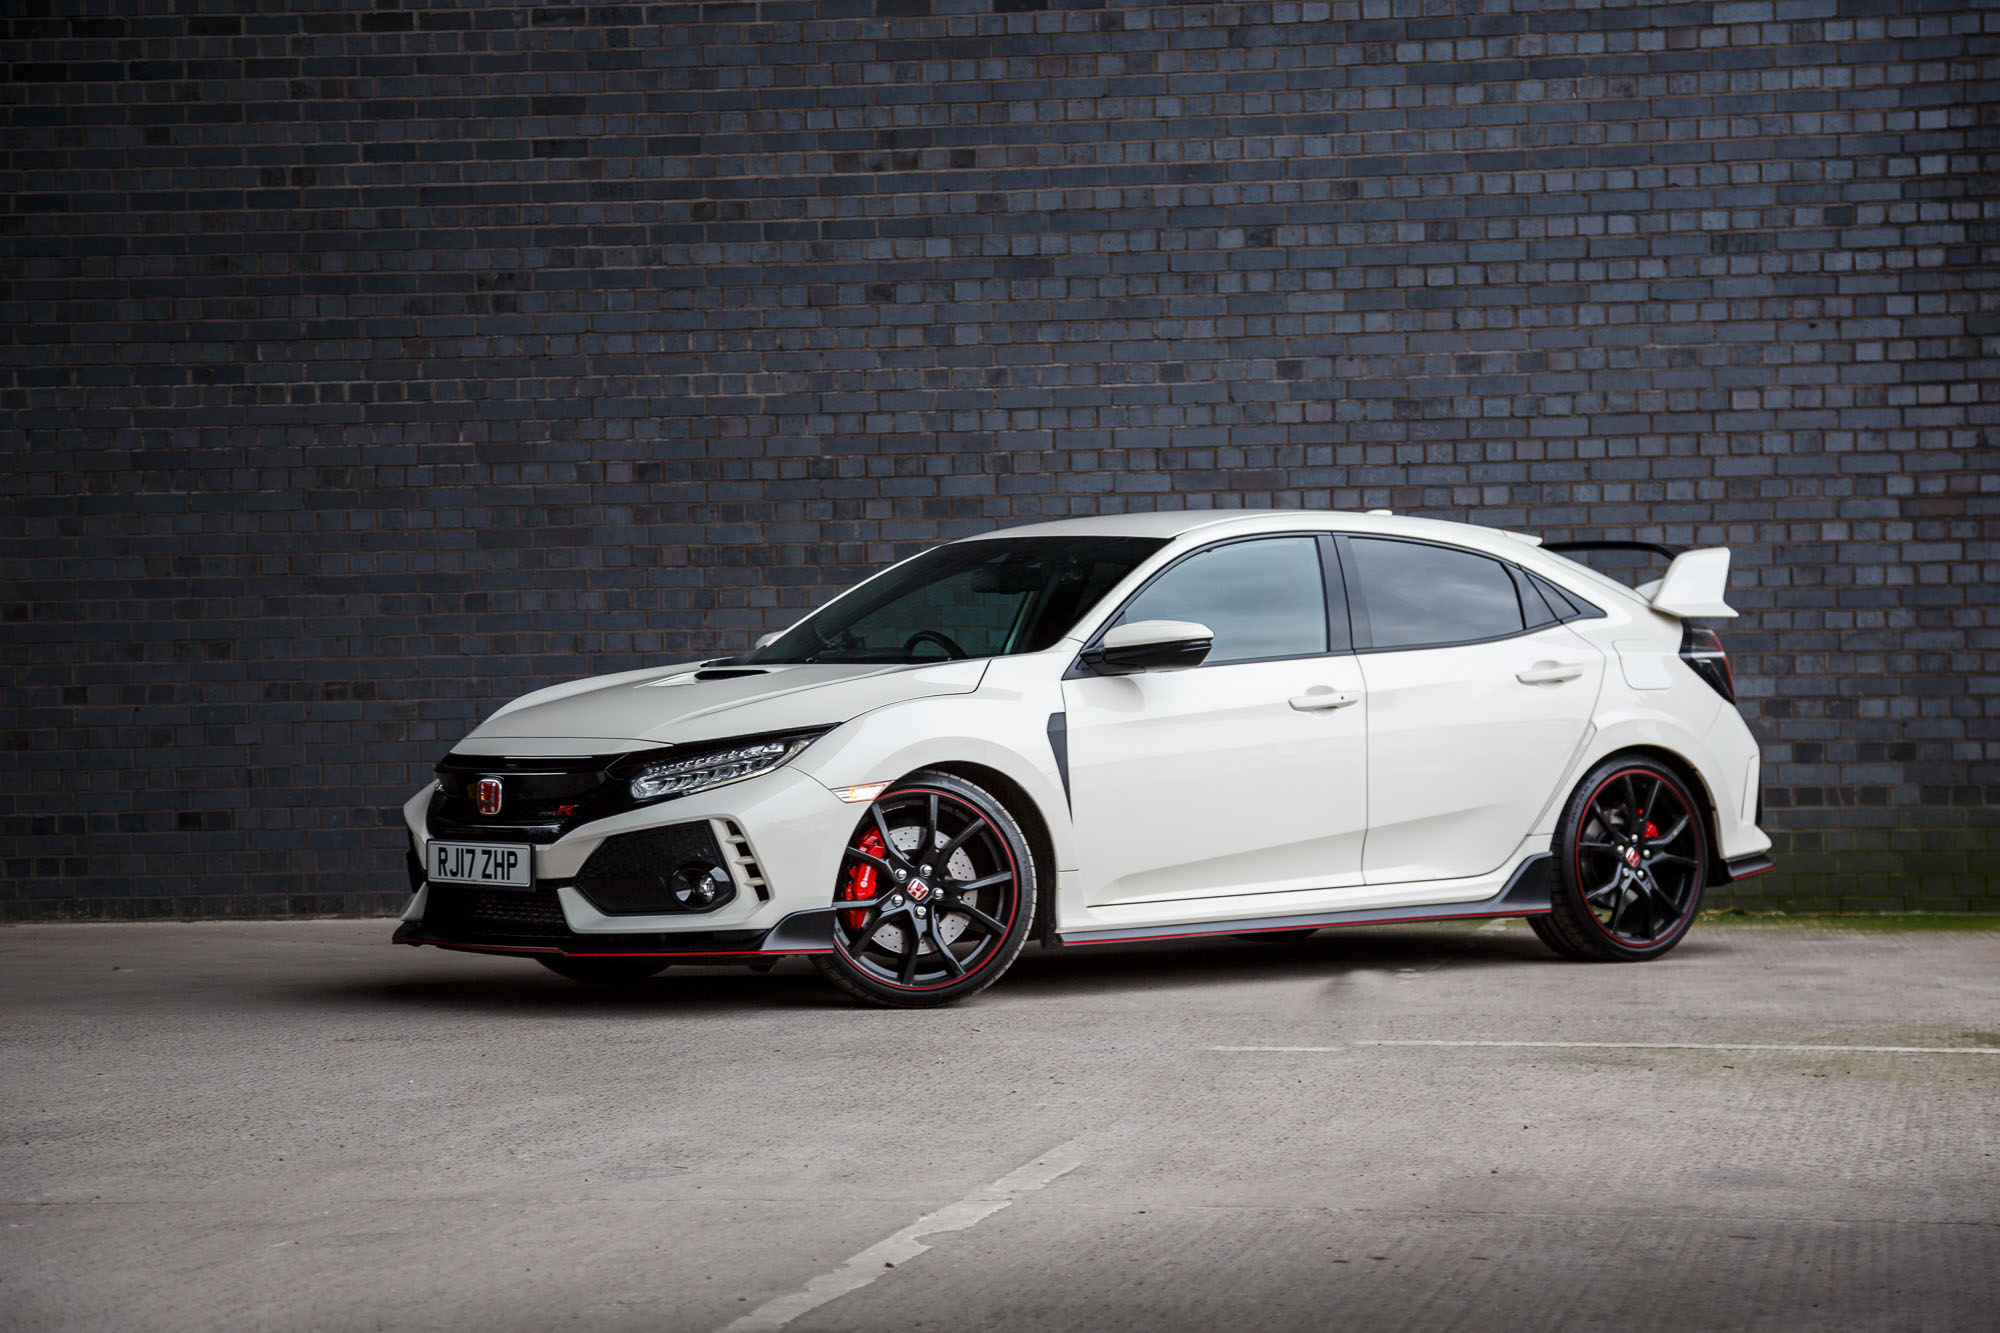 fk8 honda civic type r everything you need to know in 2019. Black Bedroom Furniture Sets. Home Design Ideas